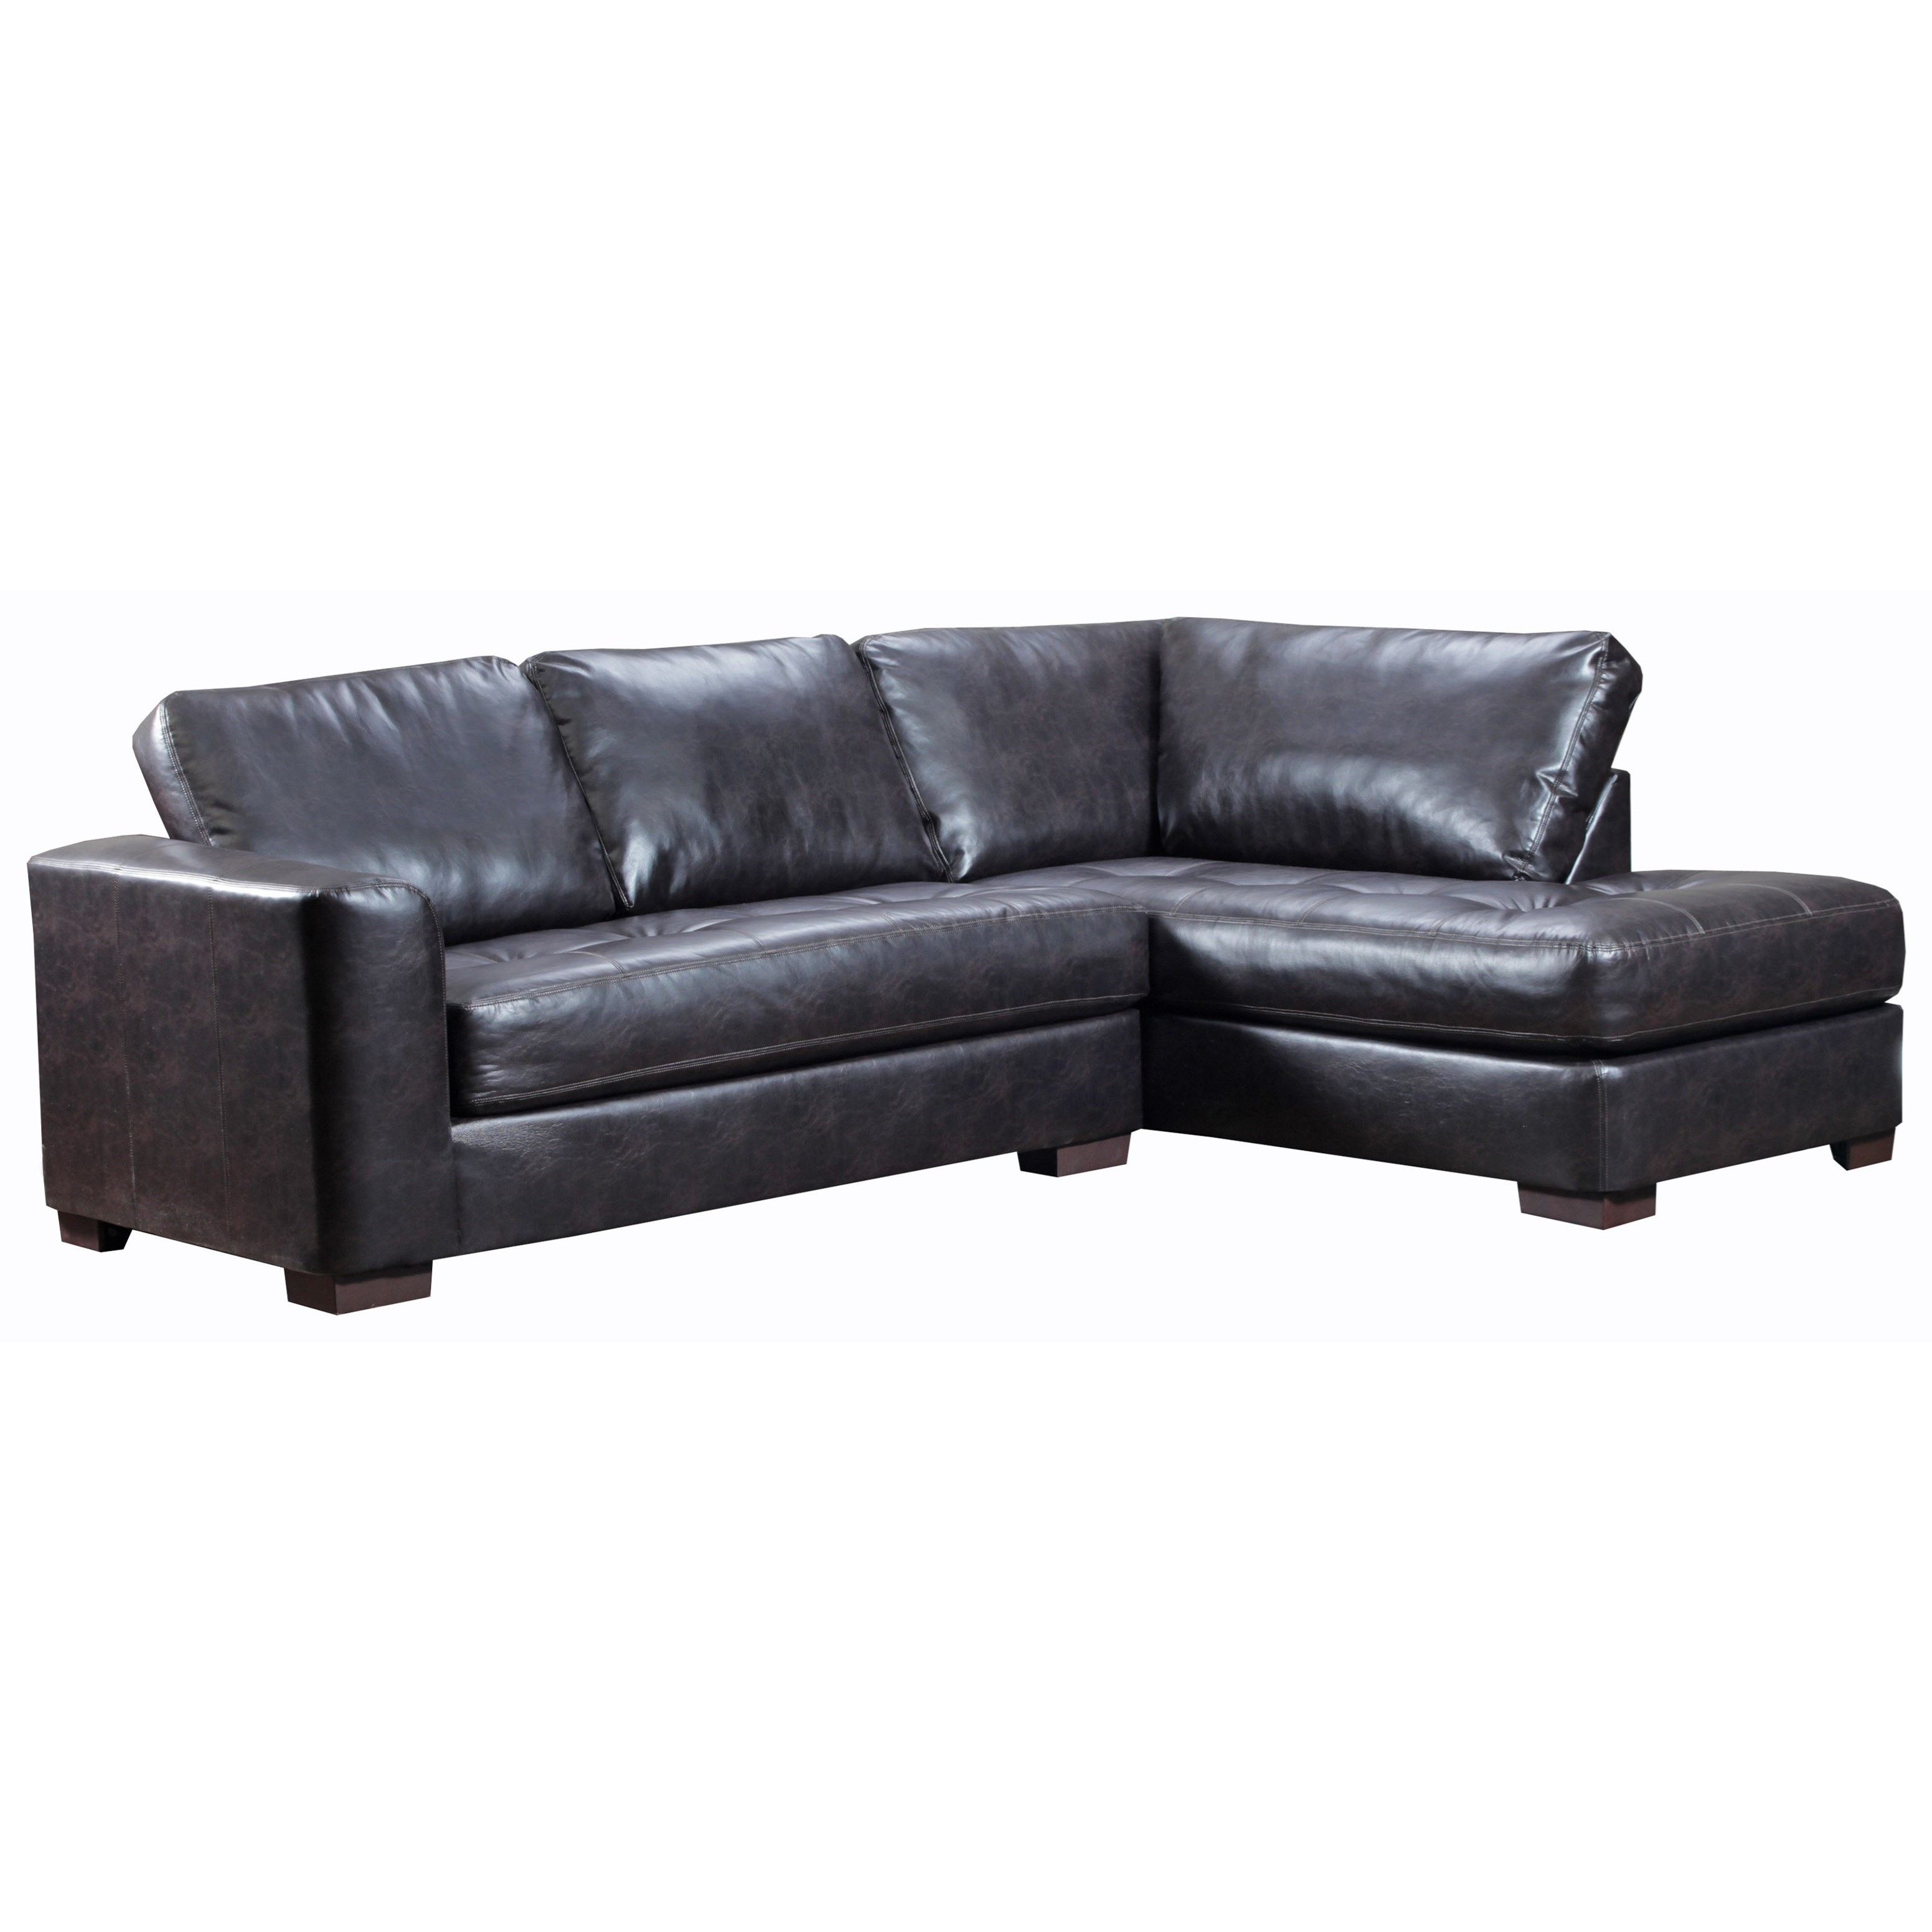 United Furniture Industries 4558 Sectional Sofa - Item Number: 4558LAFSofa+BumpChaise-LuckEspresso